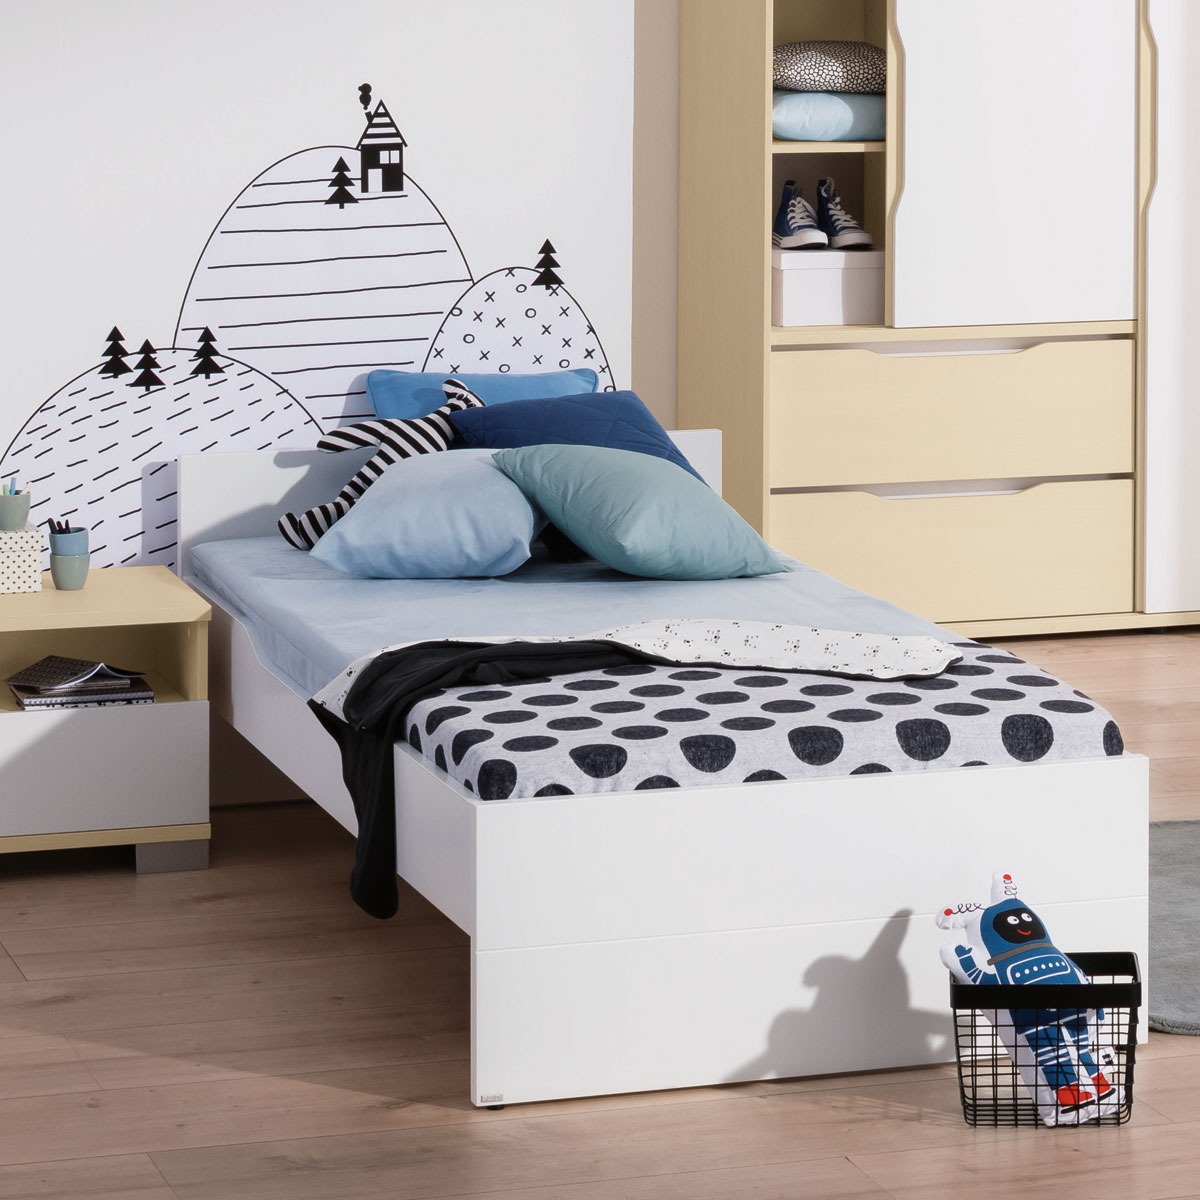 paidi mia ben jugendzimmer mit gratis lieferung. Black Bedroom Furniture Sets. Home Design Ideas